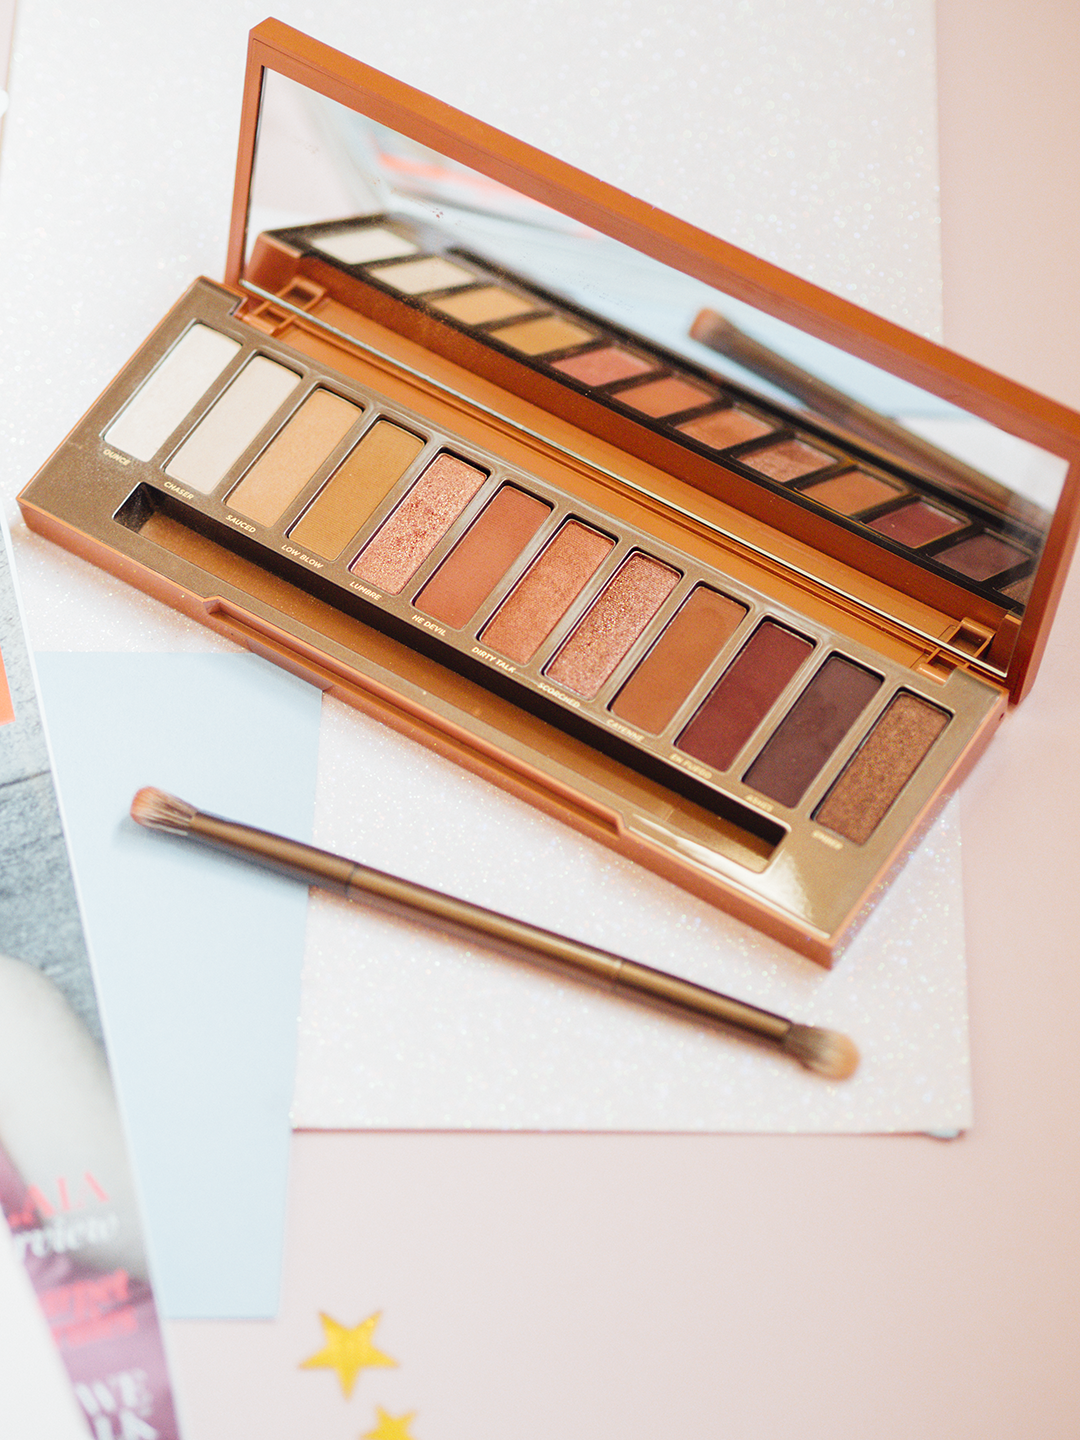 Worth the hype? The Naked Heat Palette